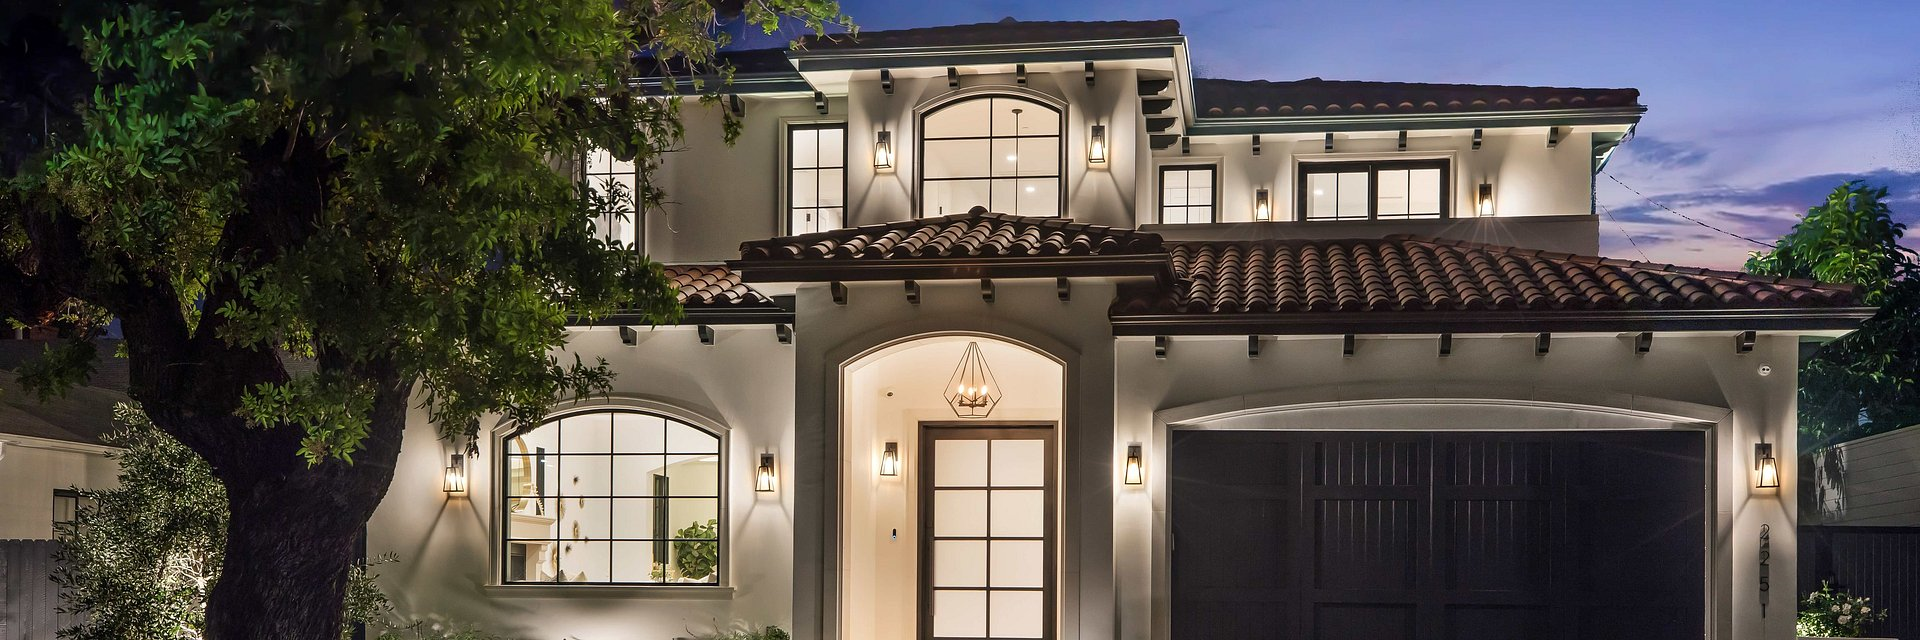 Coldwell Banker Residential Brokerage Lists Beverly Hills Property for $5.595 Million